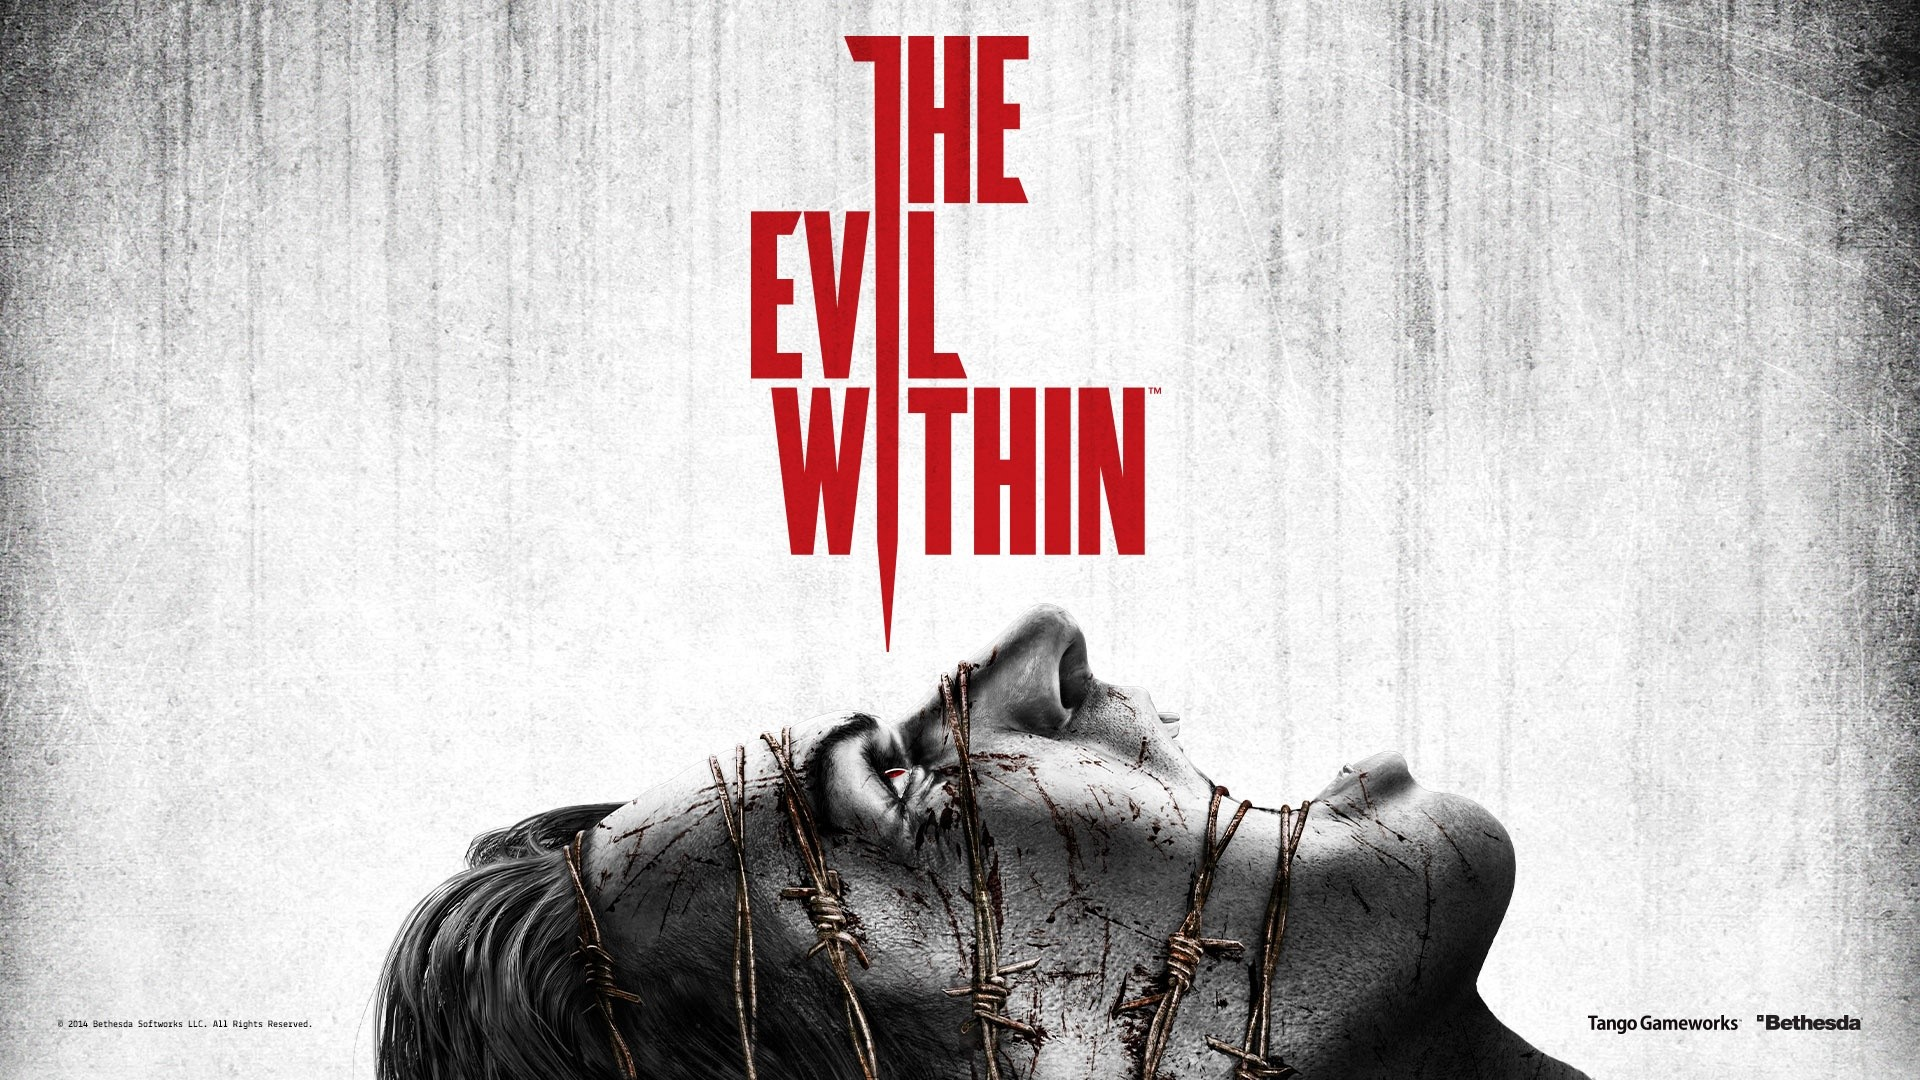 Fondo de pantalla de The evil within Imágenes